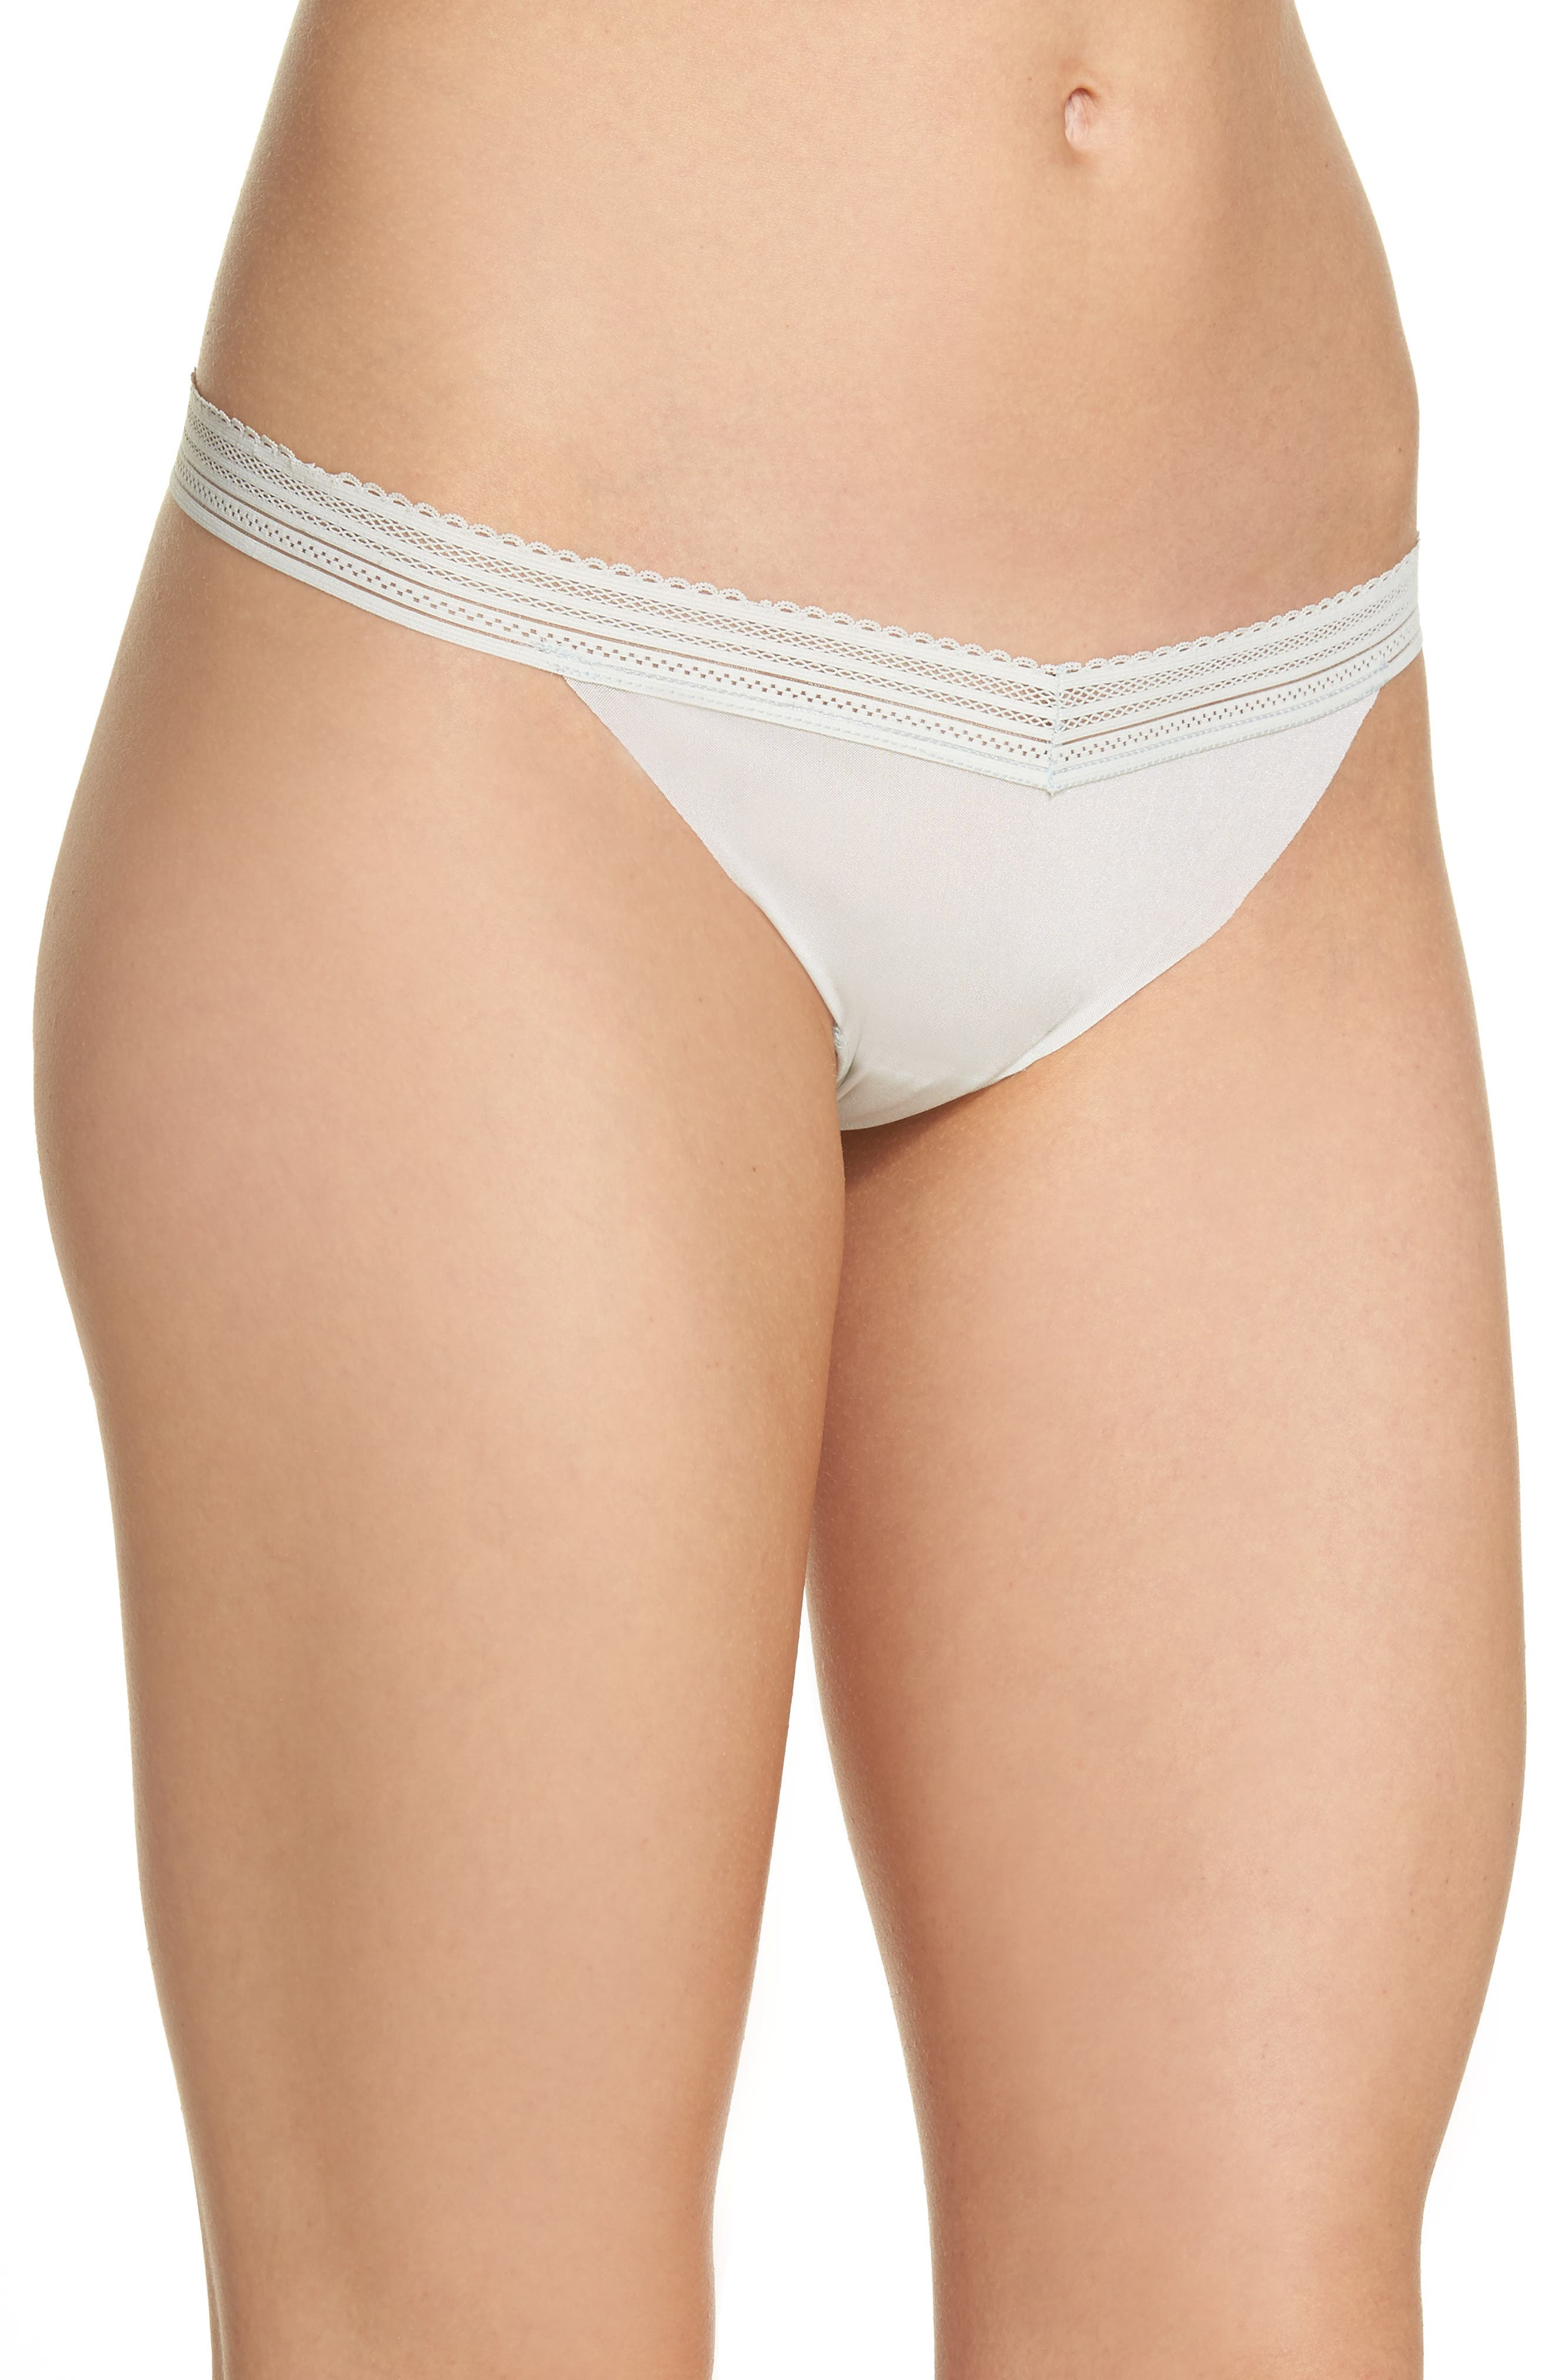 Laced In Aire Thong,                             Alternate thumbnail 3, color,                             300